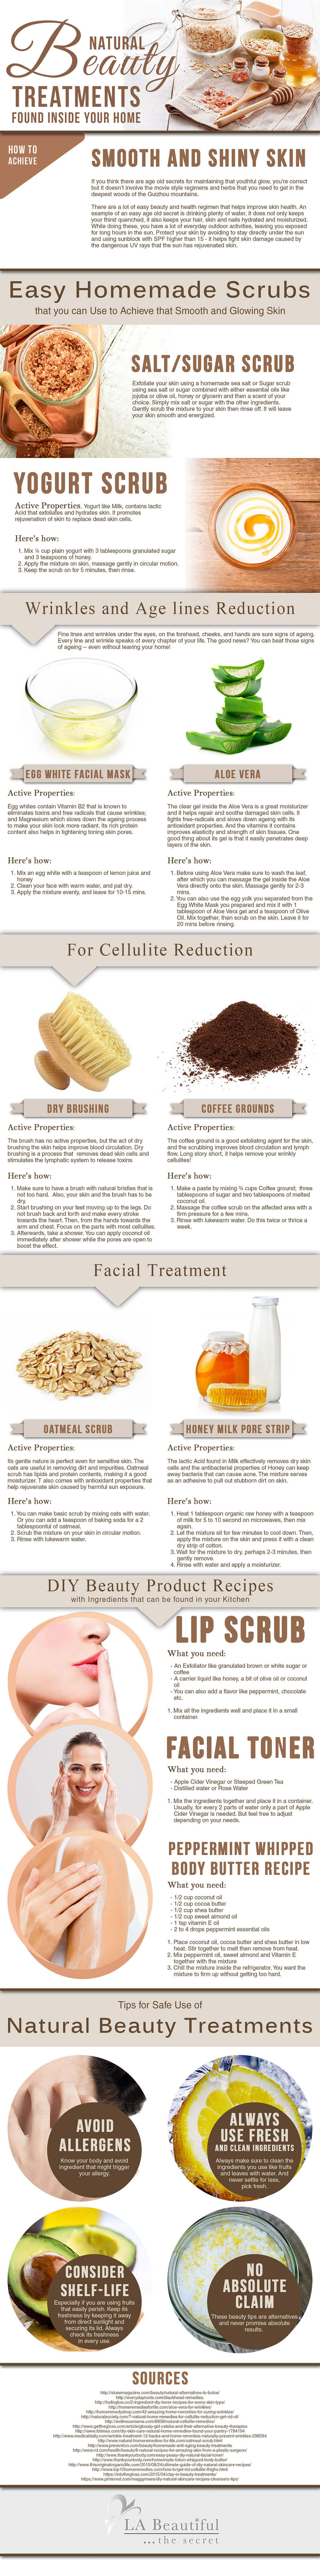 Natural-Beauty-Treatments-infographic-plaza